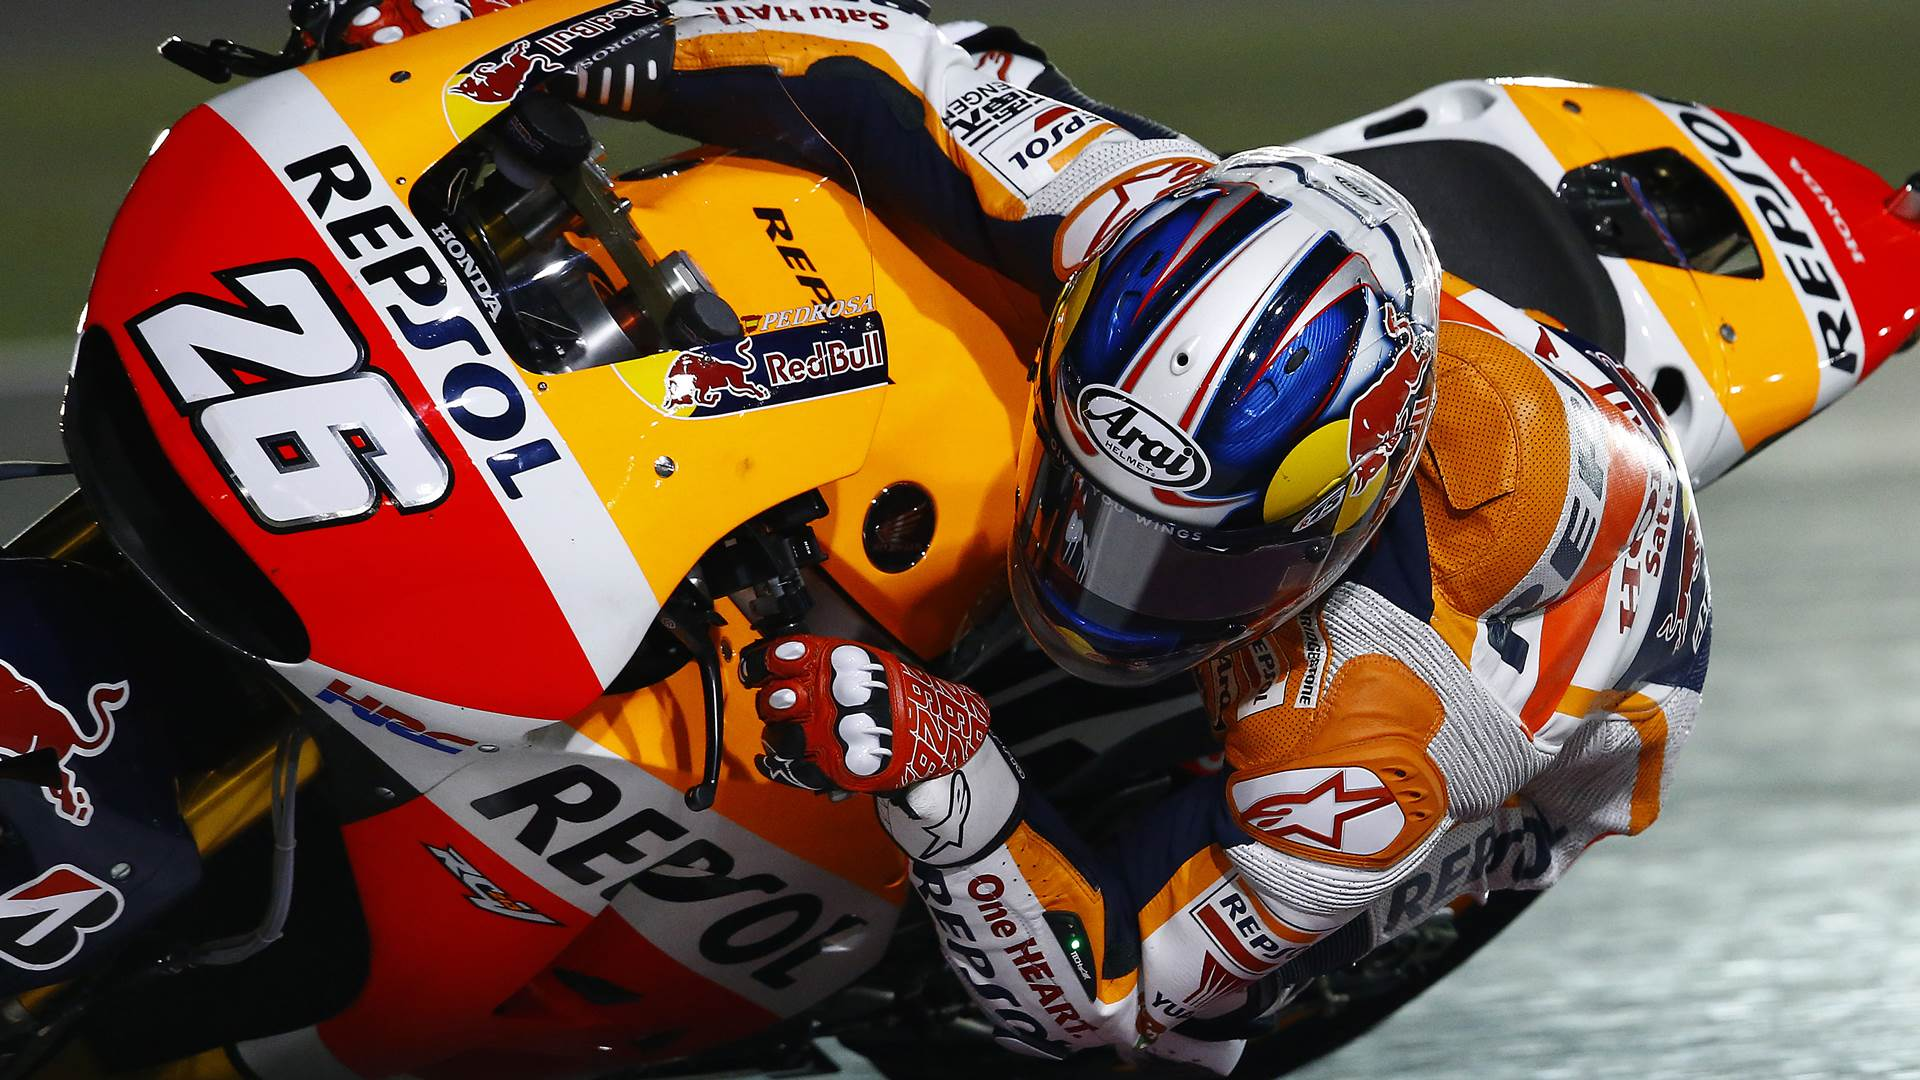 dani pedrosa - hd wallpaper - motogp qatar test 2015